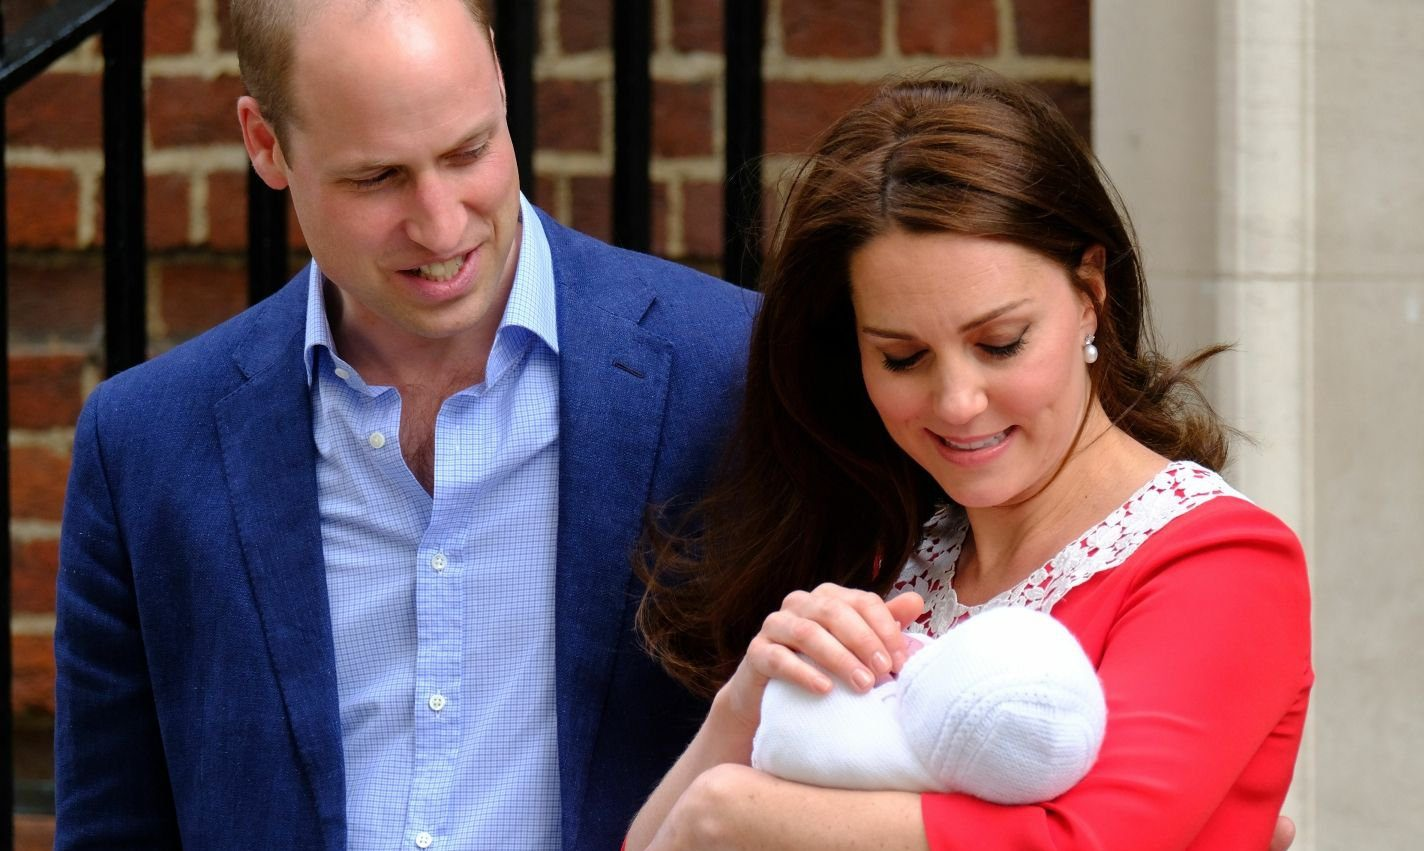 Mandatory Credit: Photo by Alan J Davidson/SHM/REX/Shutterstock (9640233fl) Prince William and Catherine Duchess of Cambridge Catherine Duchess of Cambridge gives birth to her third child, Lindo Wing, St Mary's Hospital, London, UK - 23 Apr 2018